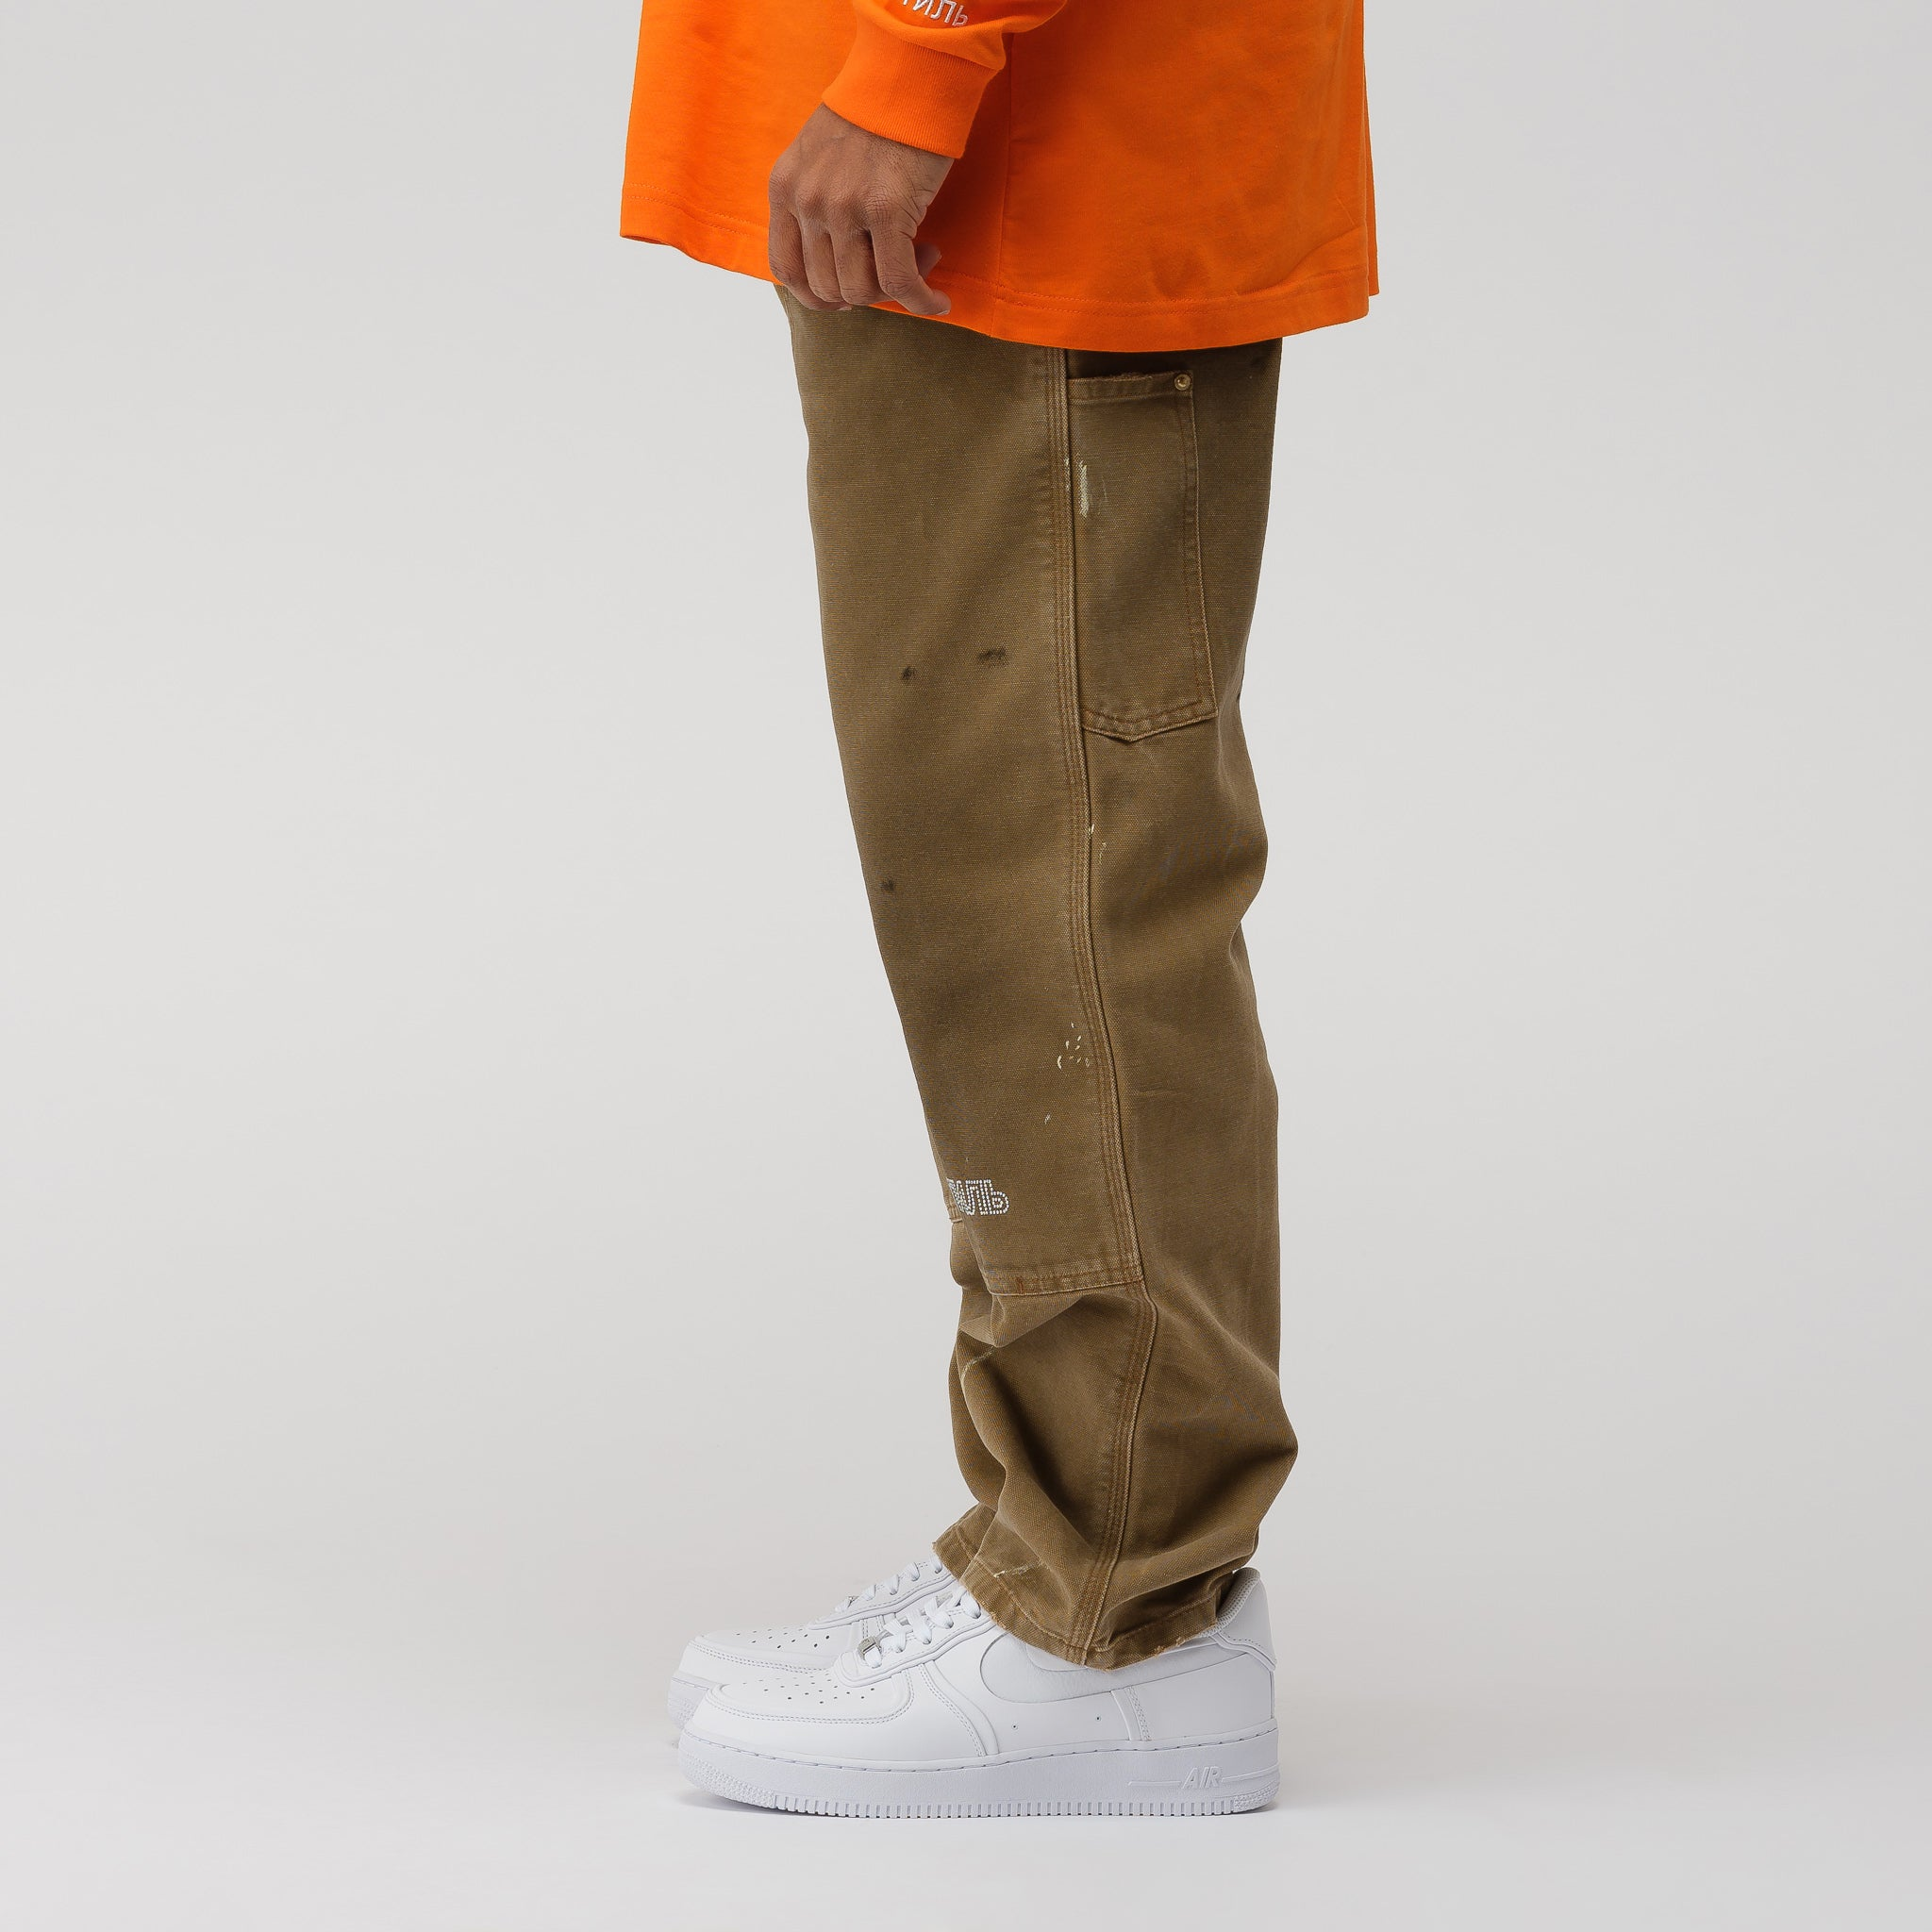 x Carhartt Pants in Kaki Crystal